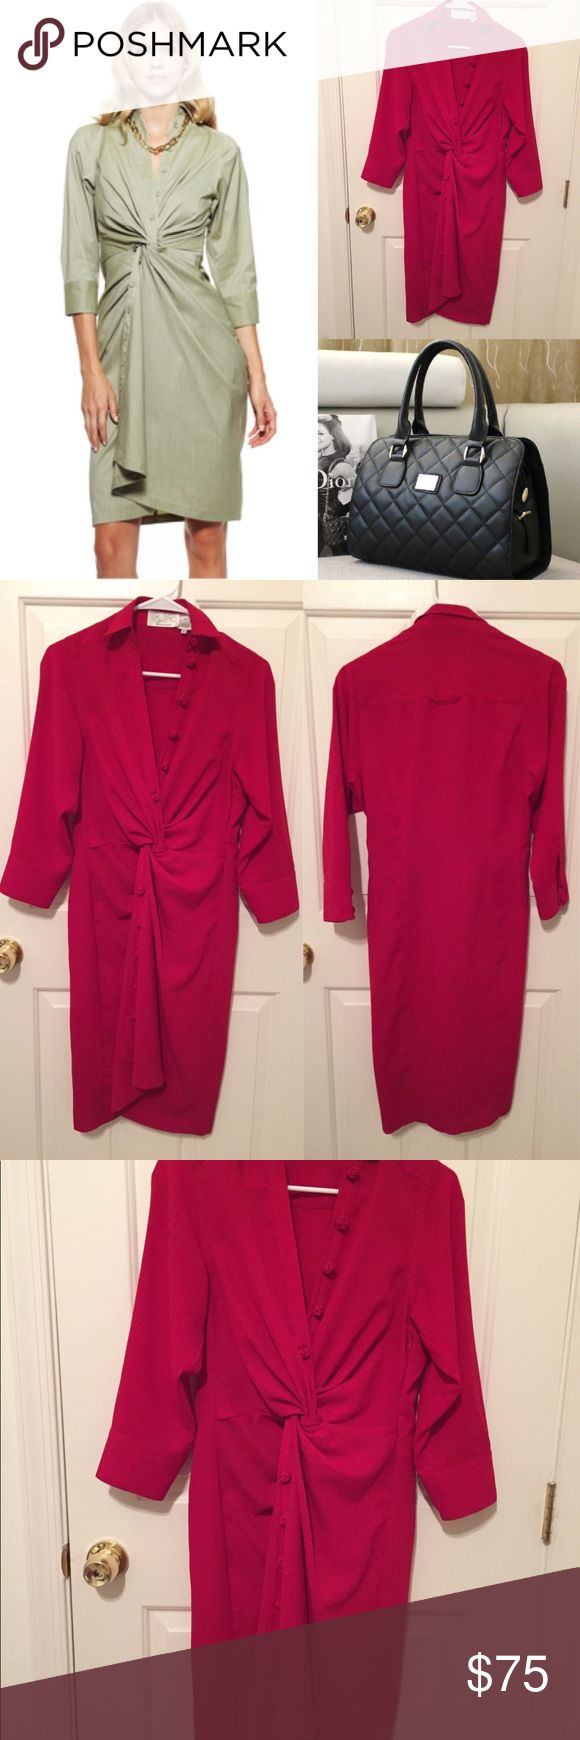 Red Hot Byron Lars twisted shirt dress Size 6. Measurements are shown in photos. There are no flaws that I know of. Please carefully look at each photo before purchasing Anthropologie Dresses